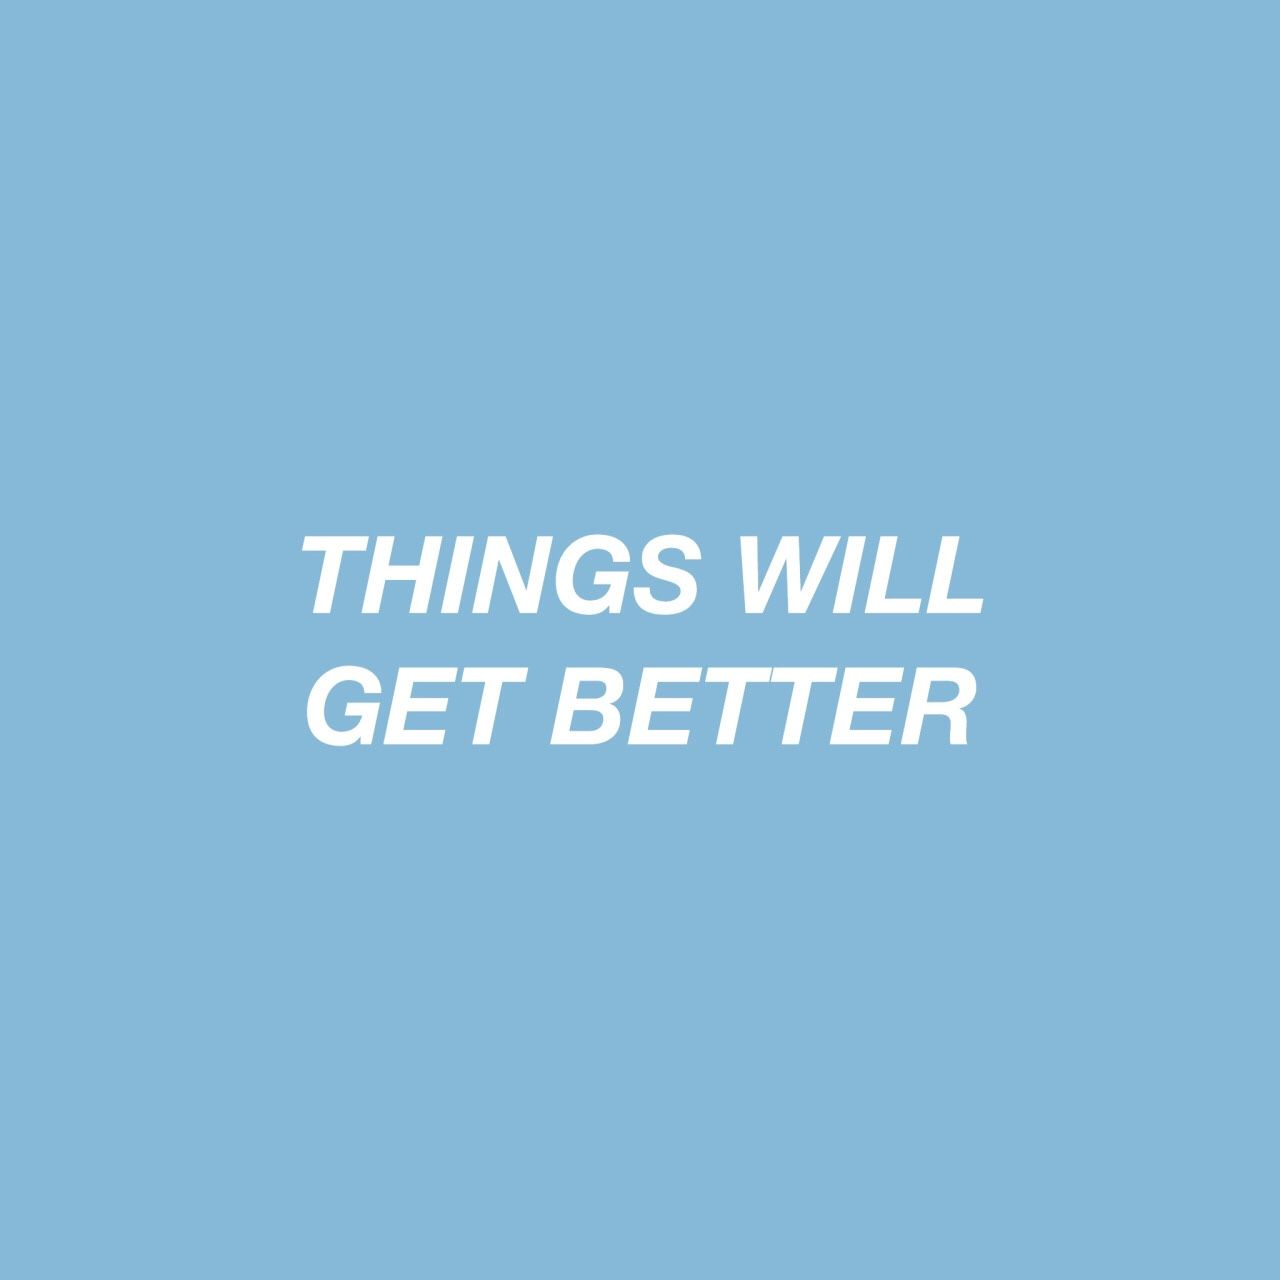 The Personal Quotes Love Quotes Quotes Inspiration Inspirational Love Quote Tumblrquotes Typography So True Blue Quotes Personal Quotes Blue Aesthetic